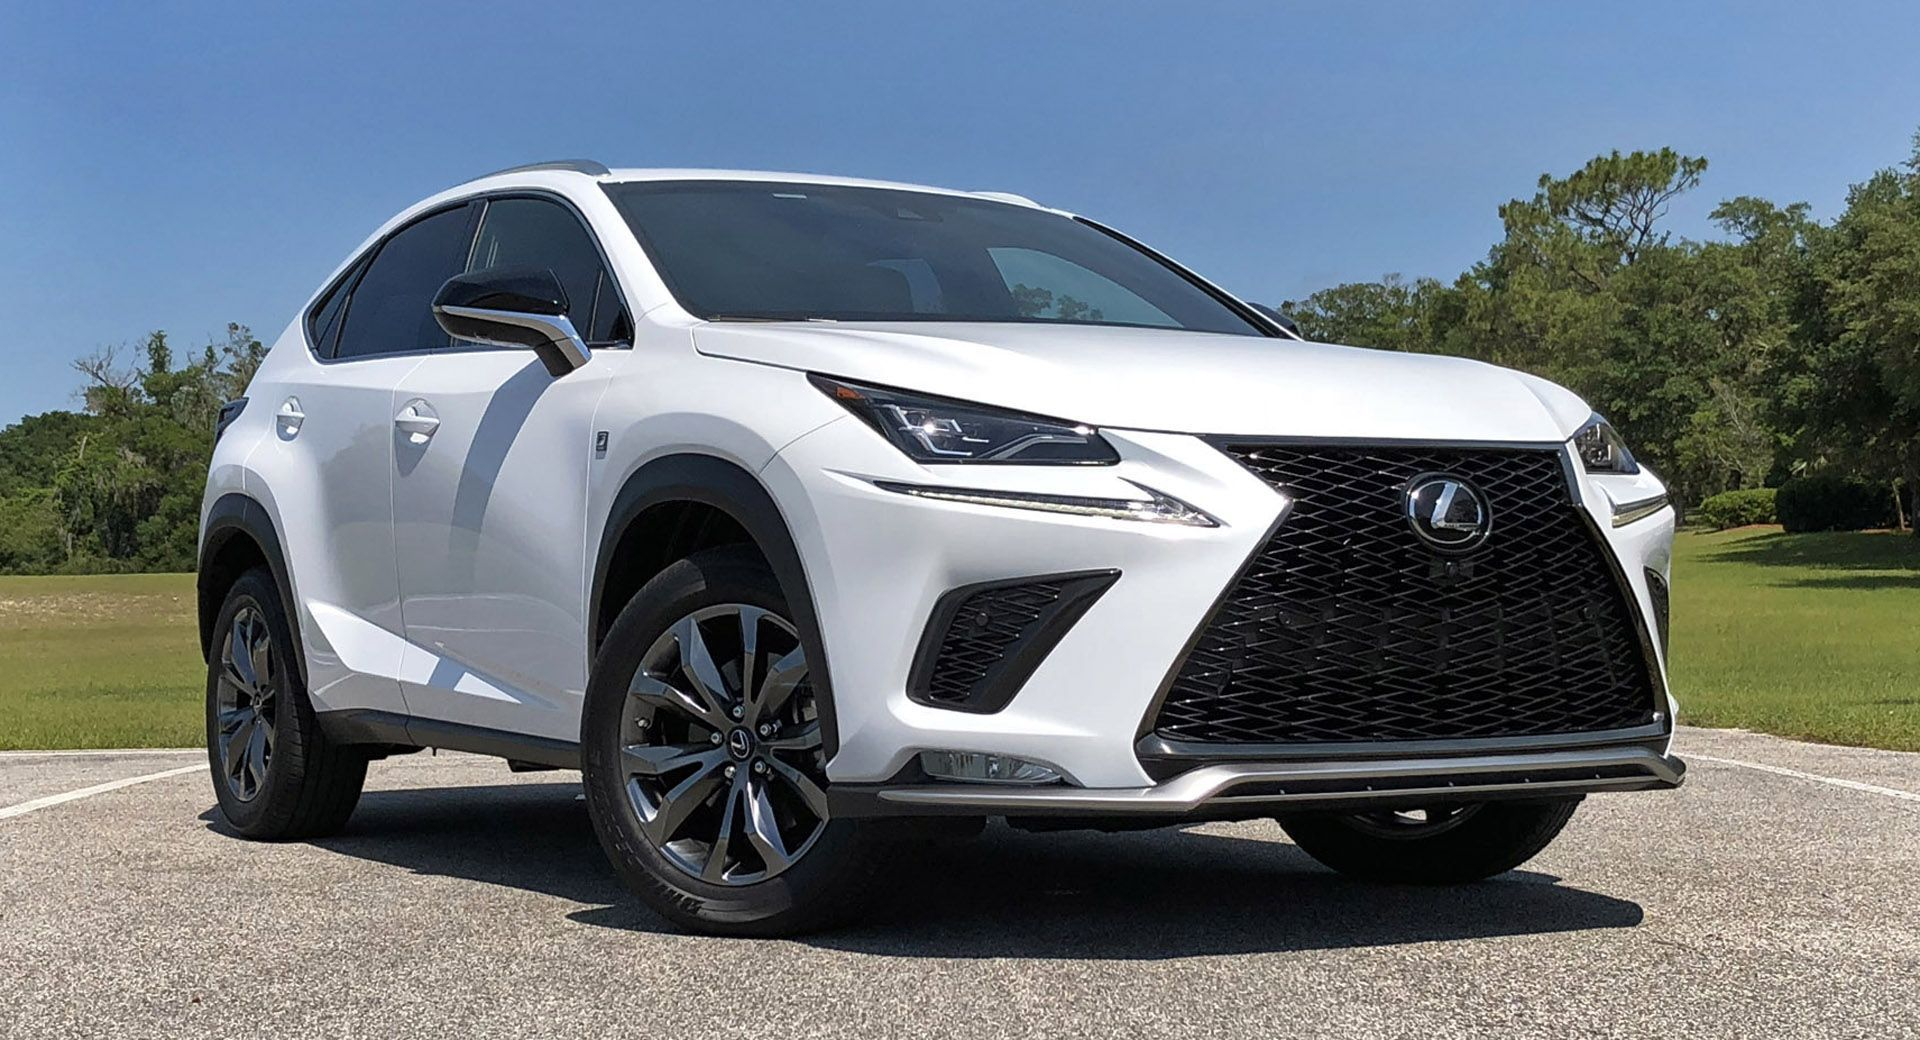 We Drive The 2018 Lexus NX 300 FSport, Ask Us Anything